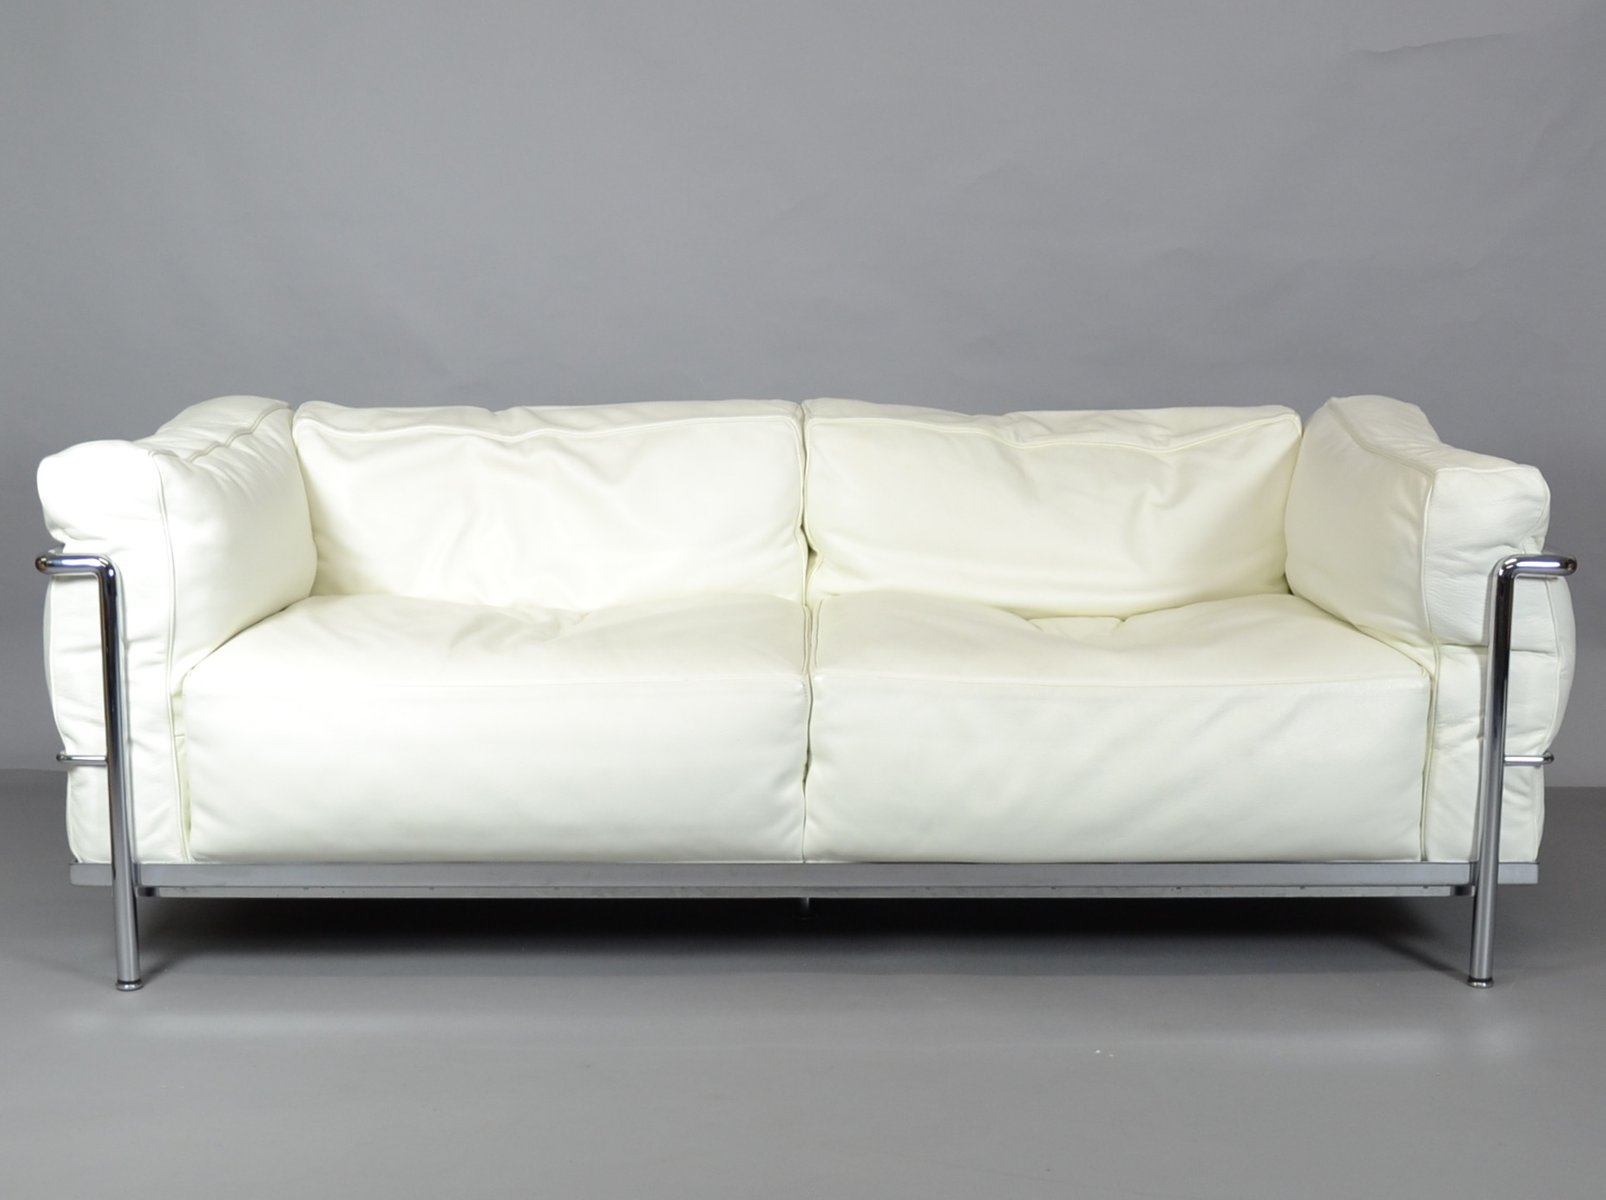 Vintage lc3 sofa by le corbusier charlotte perriand and for Le corbusier sofa nachbau